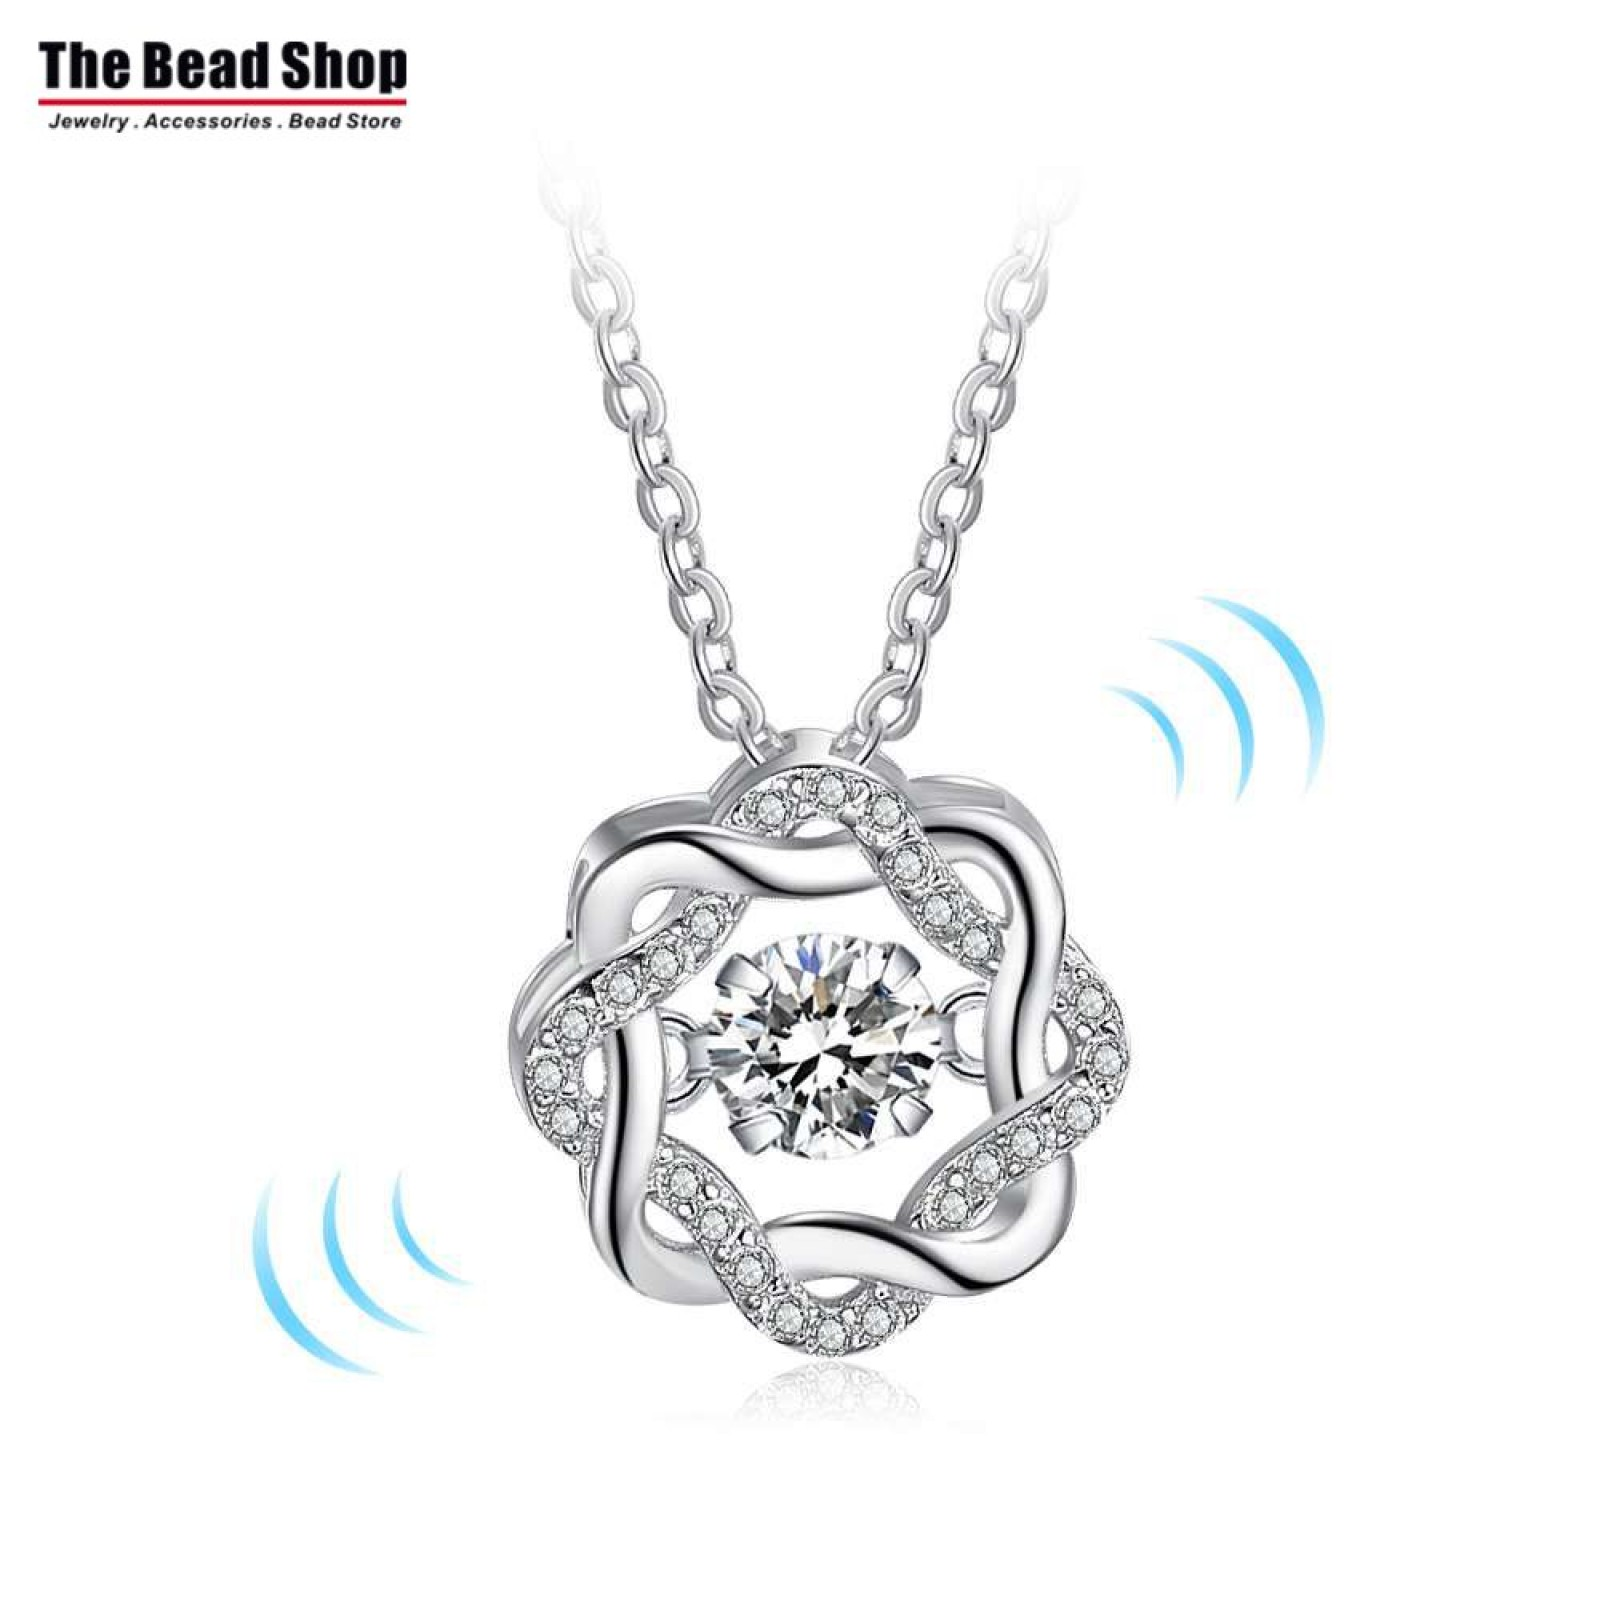 Blossom Dancing Stone Necklace 925 Sterling Silver (DDN22)